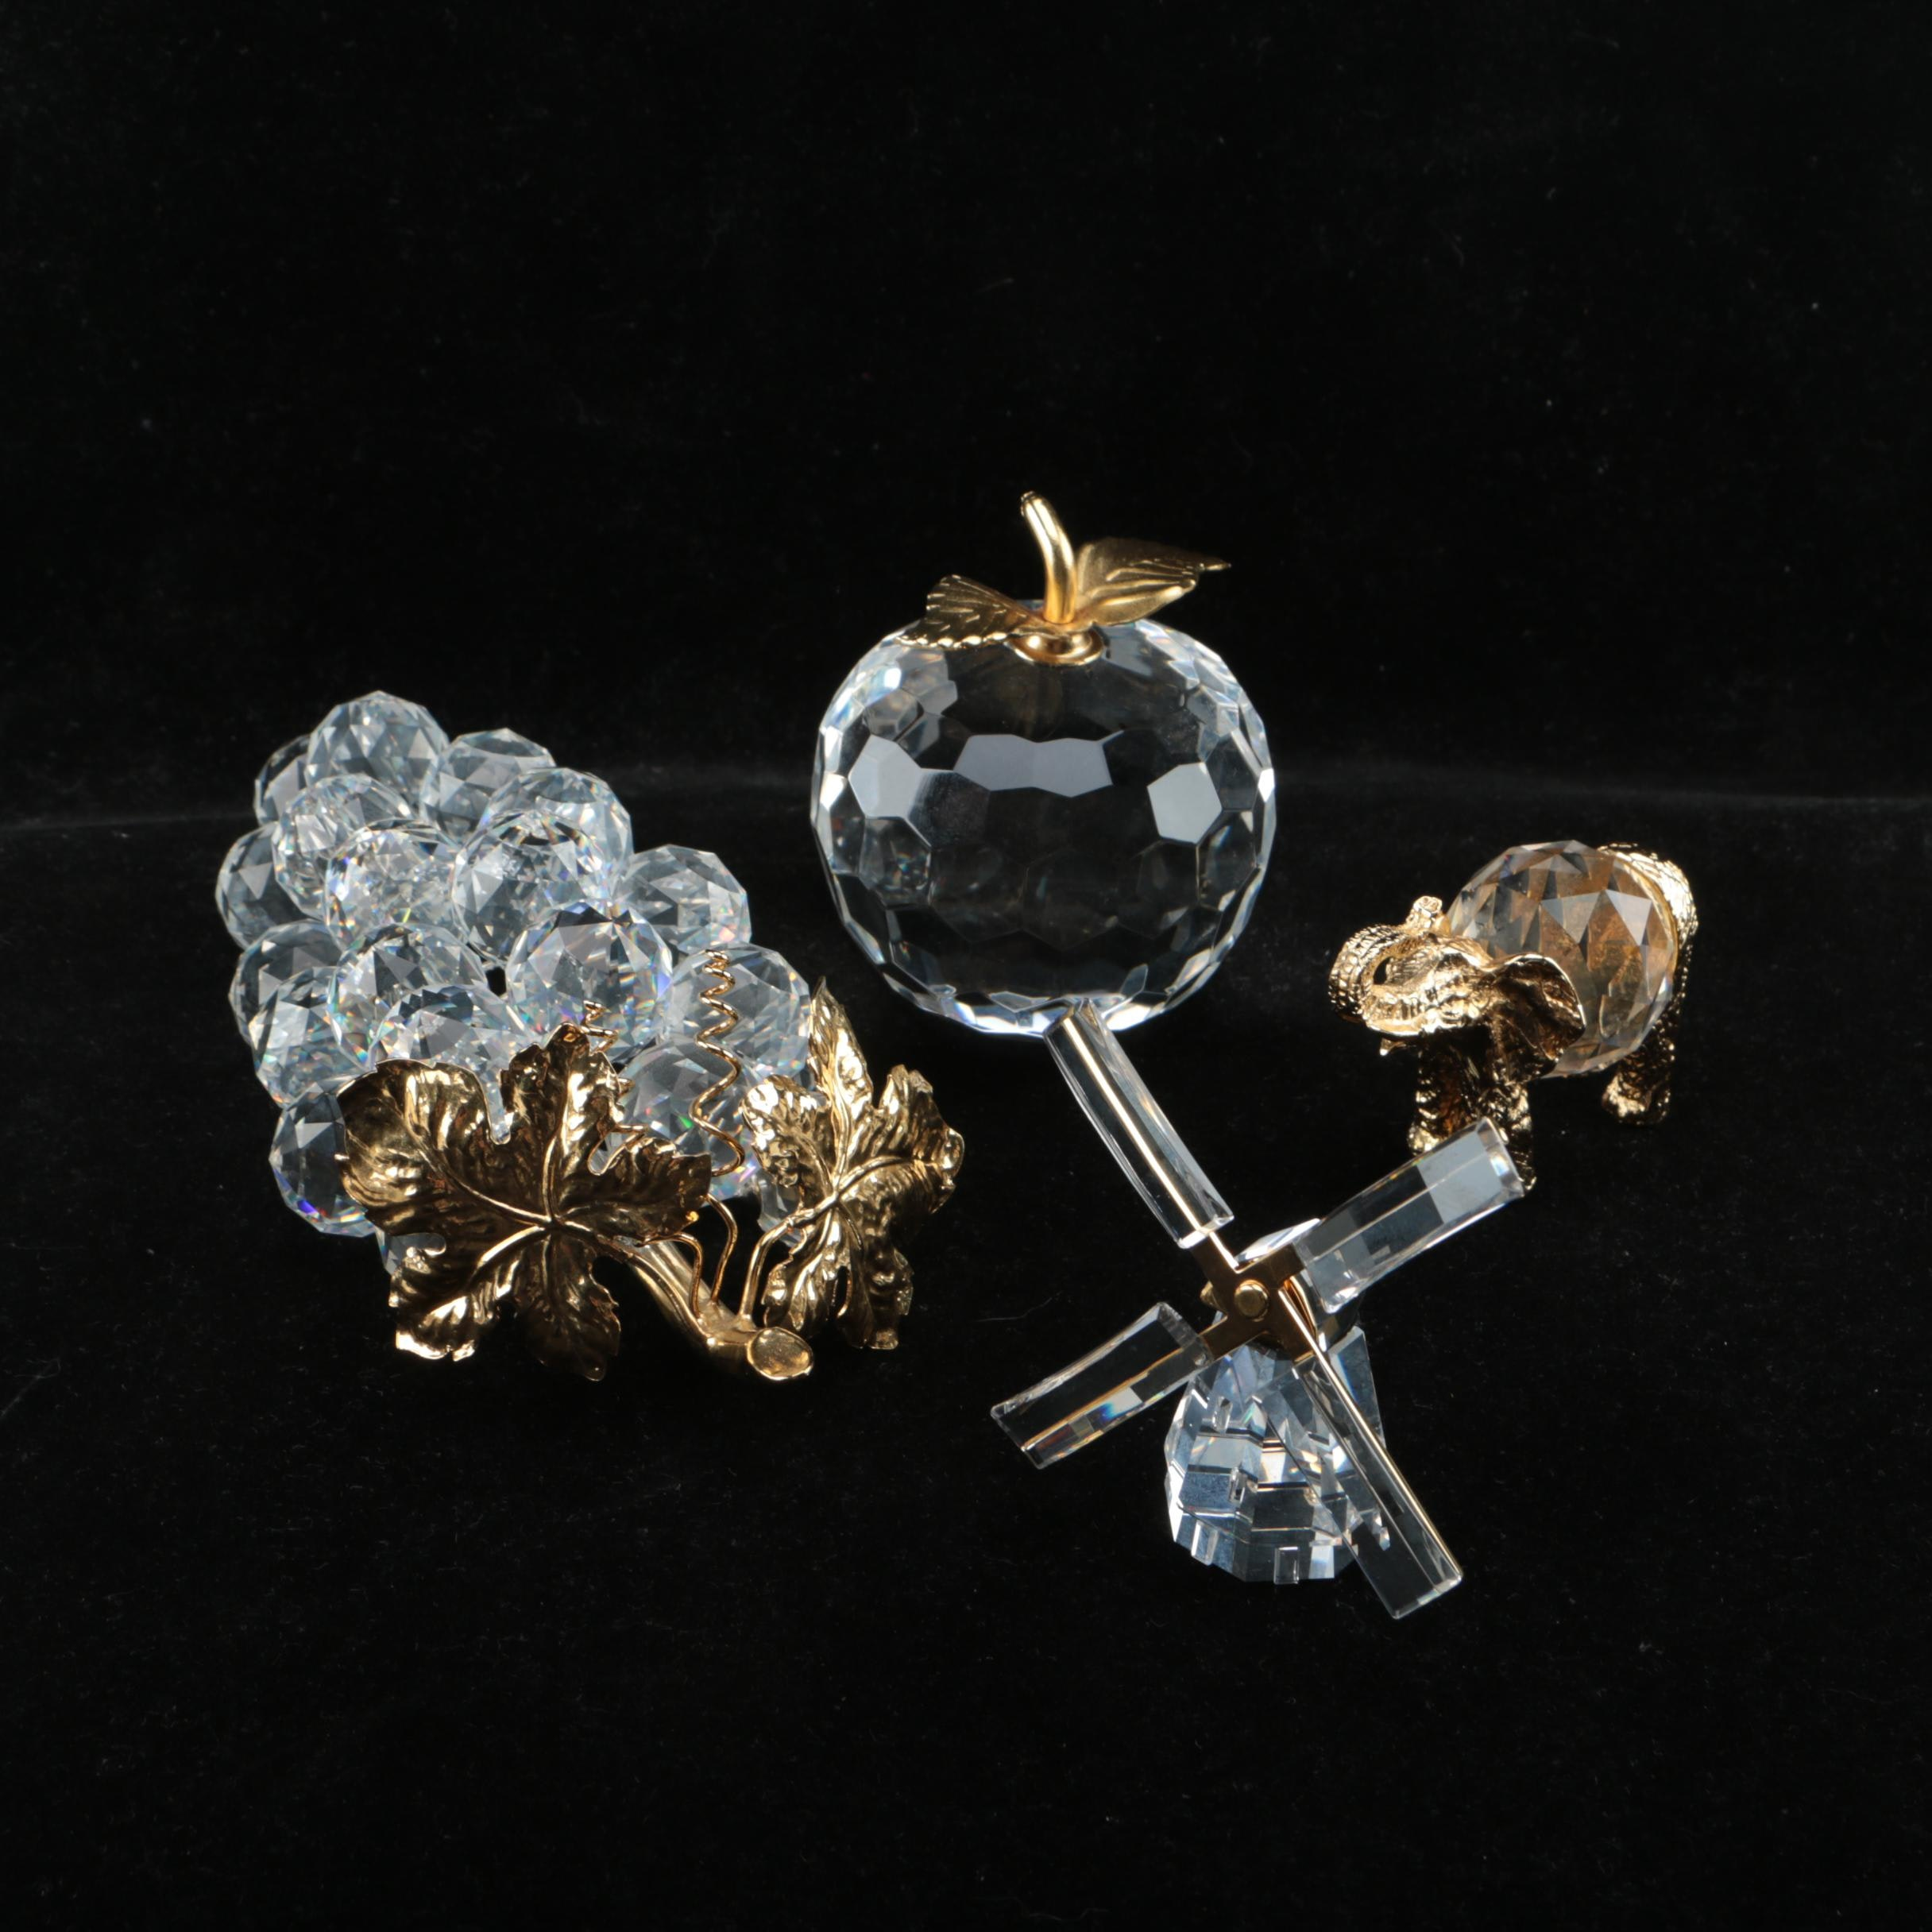 Swarovski Crystal and Gold Plated Figurines